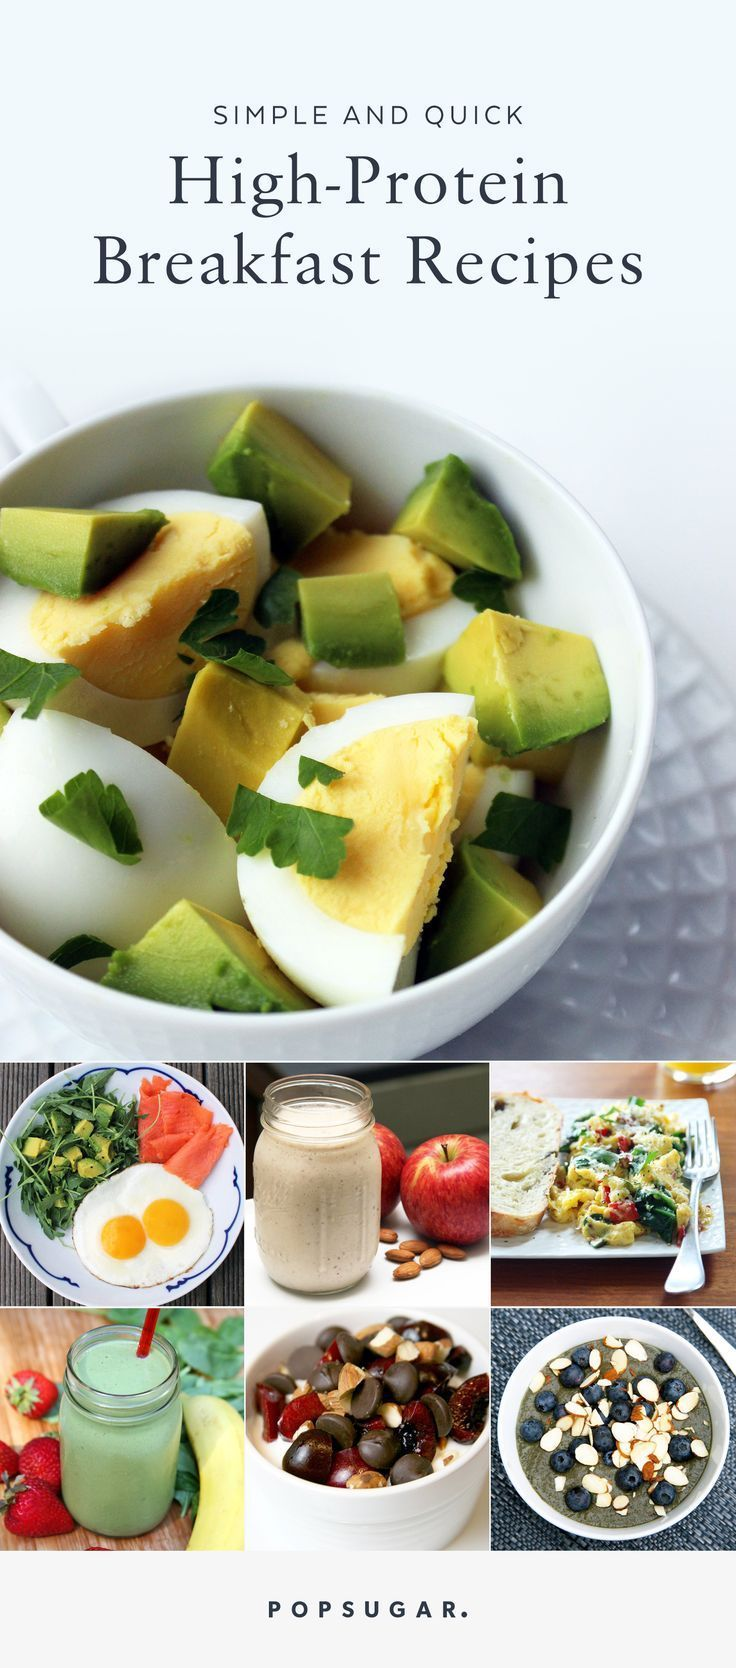 34 Easy High-Protein Breakfasts Thatll Help You Lose Weight 34 Easy High-Protein Breakfasts Thatll Help You Lose Weight new images